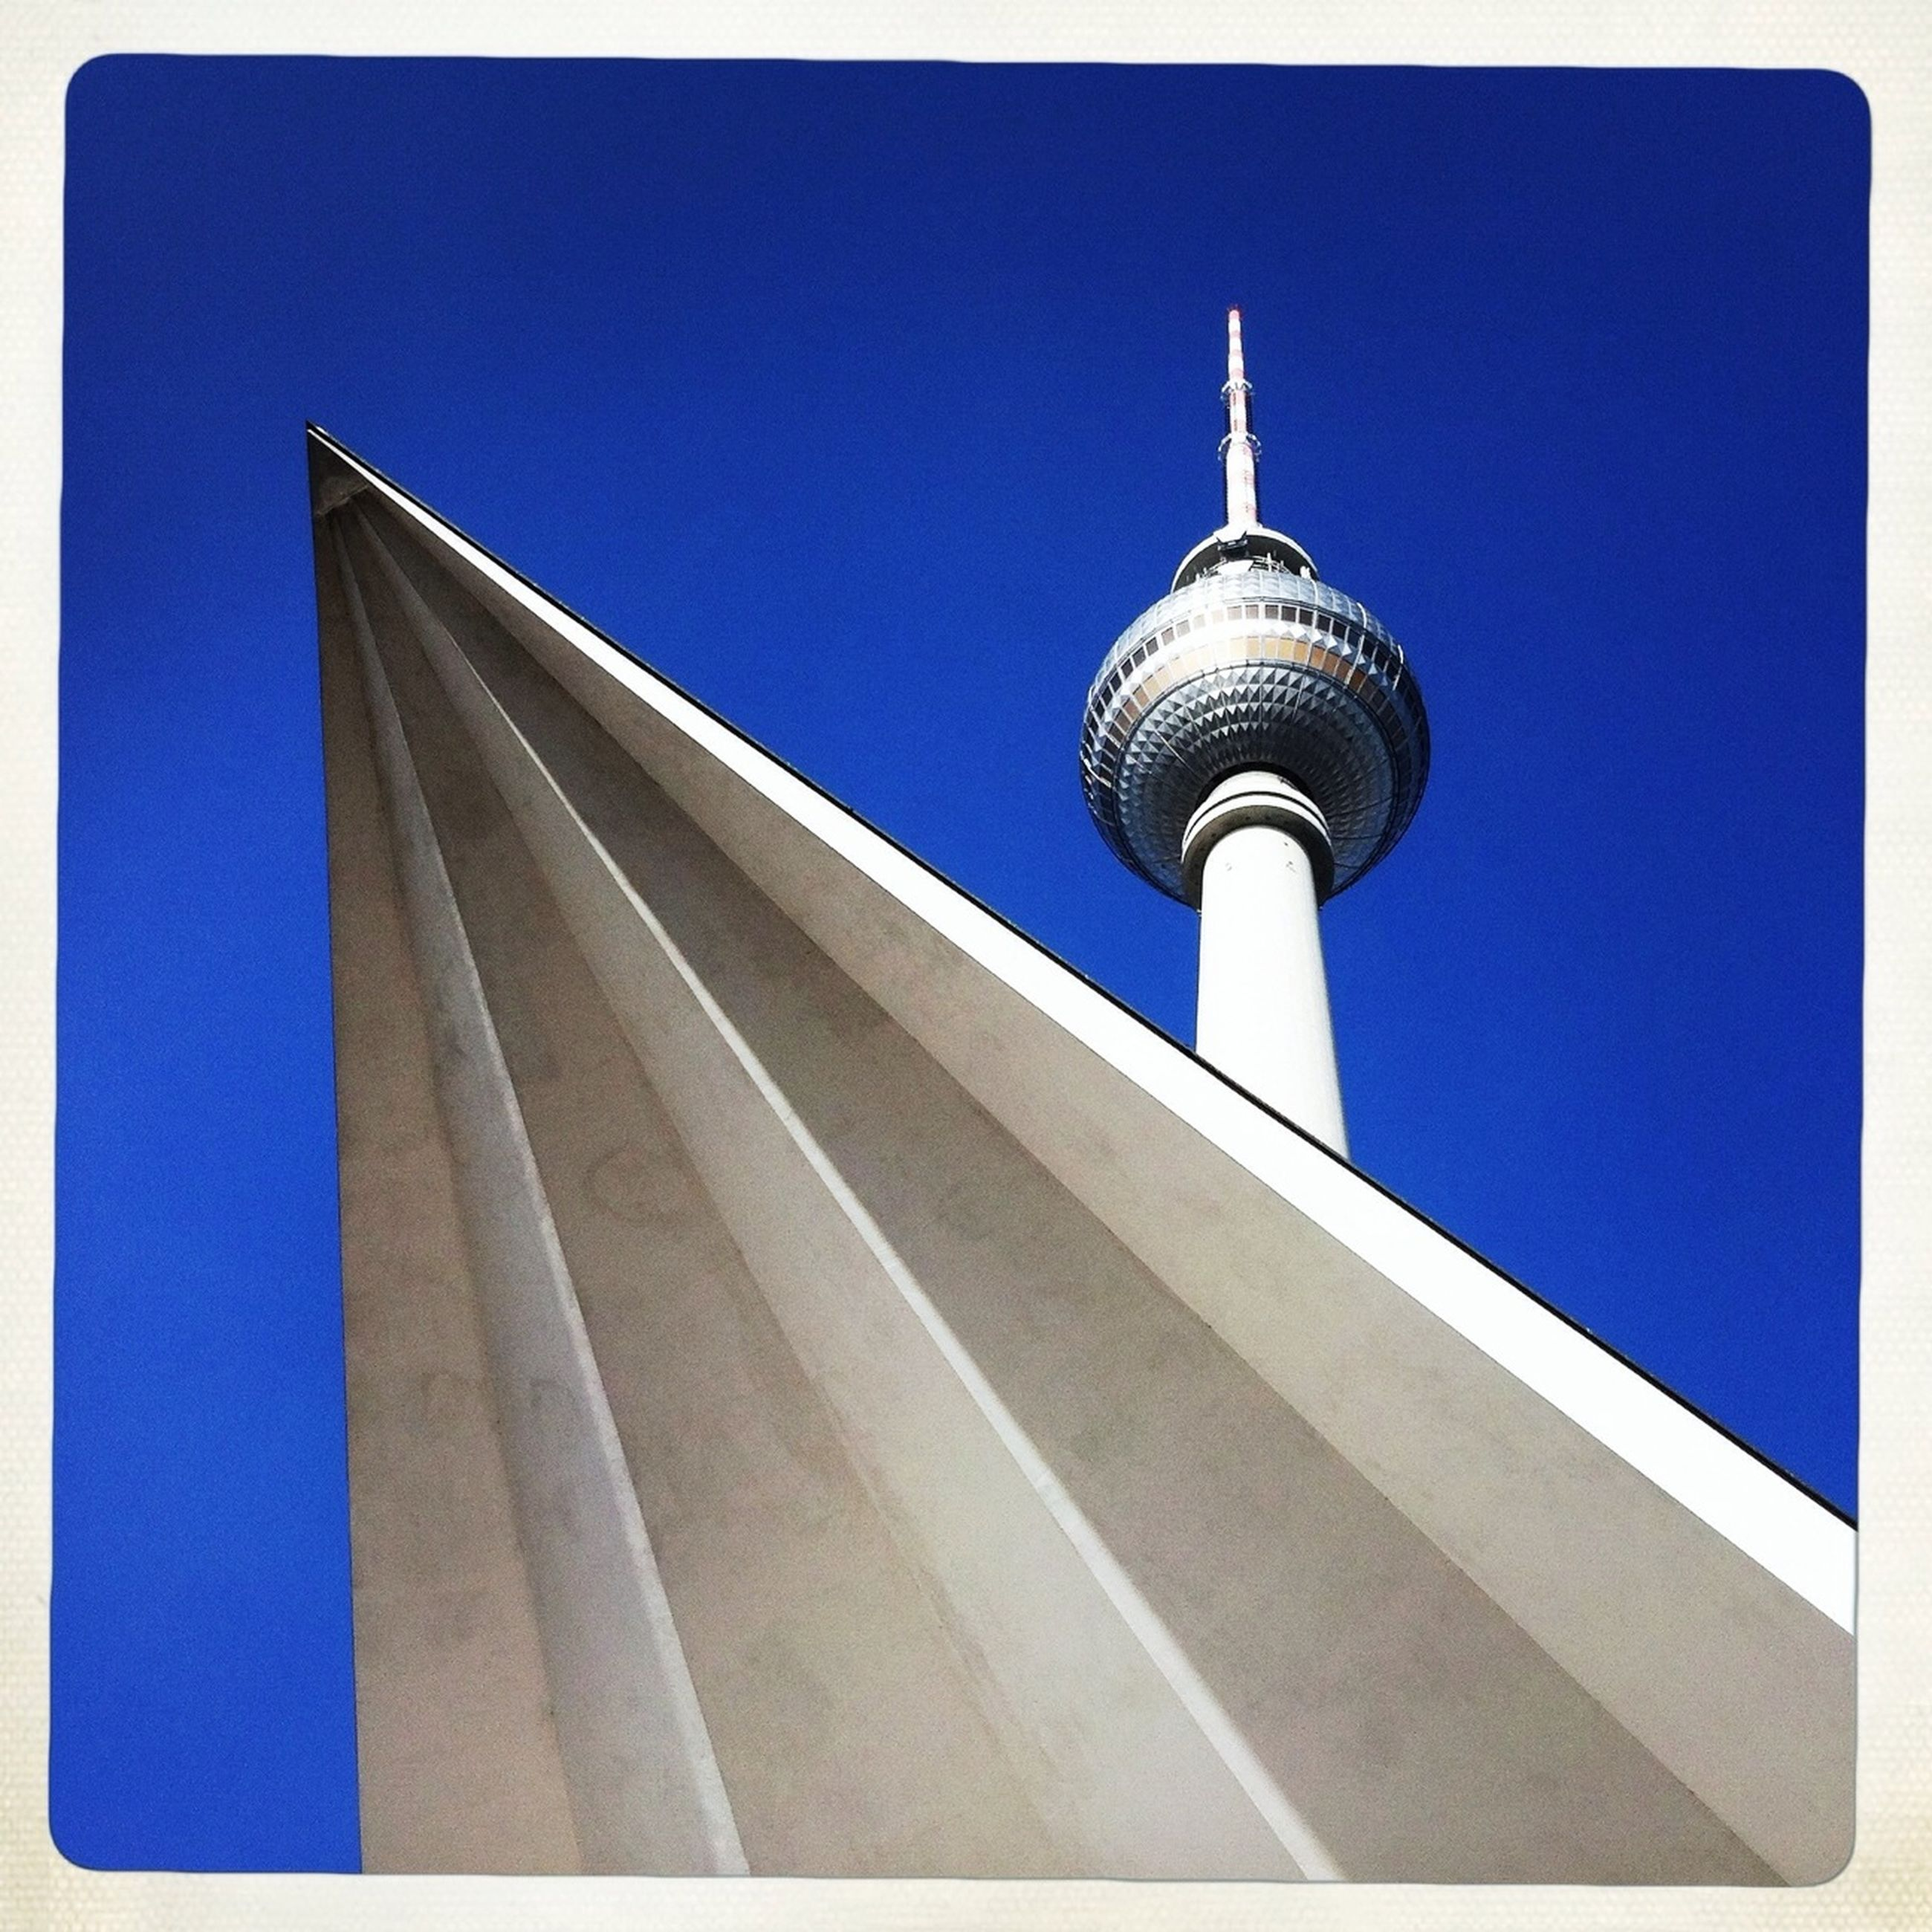 architecture, built structure, tower, communications tower, tall - high, famous place, building exterior, international landmark, blue, travel destinations, spire, tourism, low angle view, clear sky, capital cities, travel, fernsehturm, television tower, culture, communication